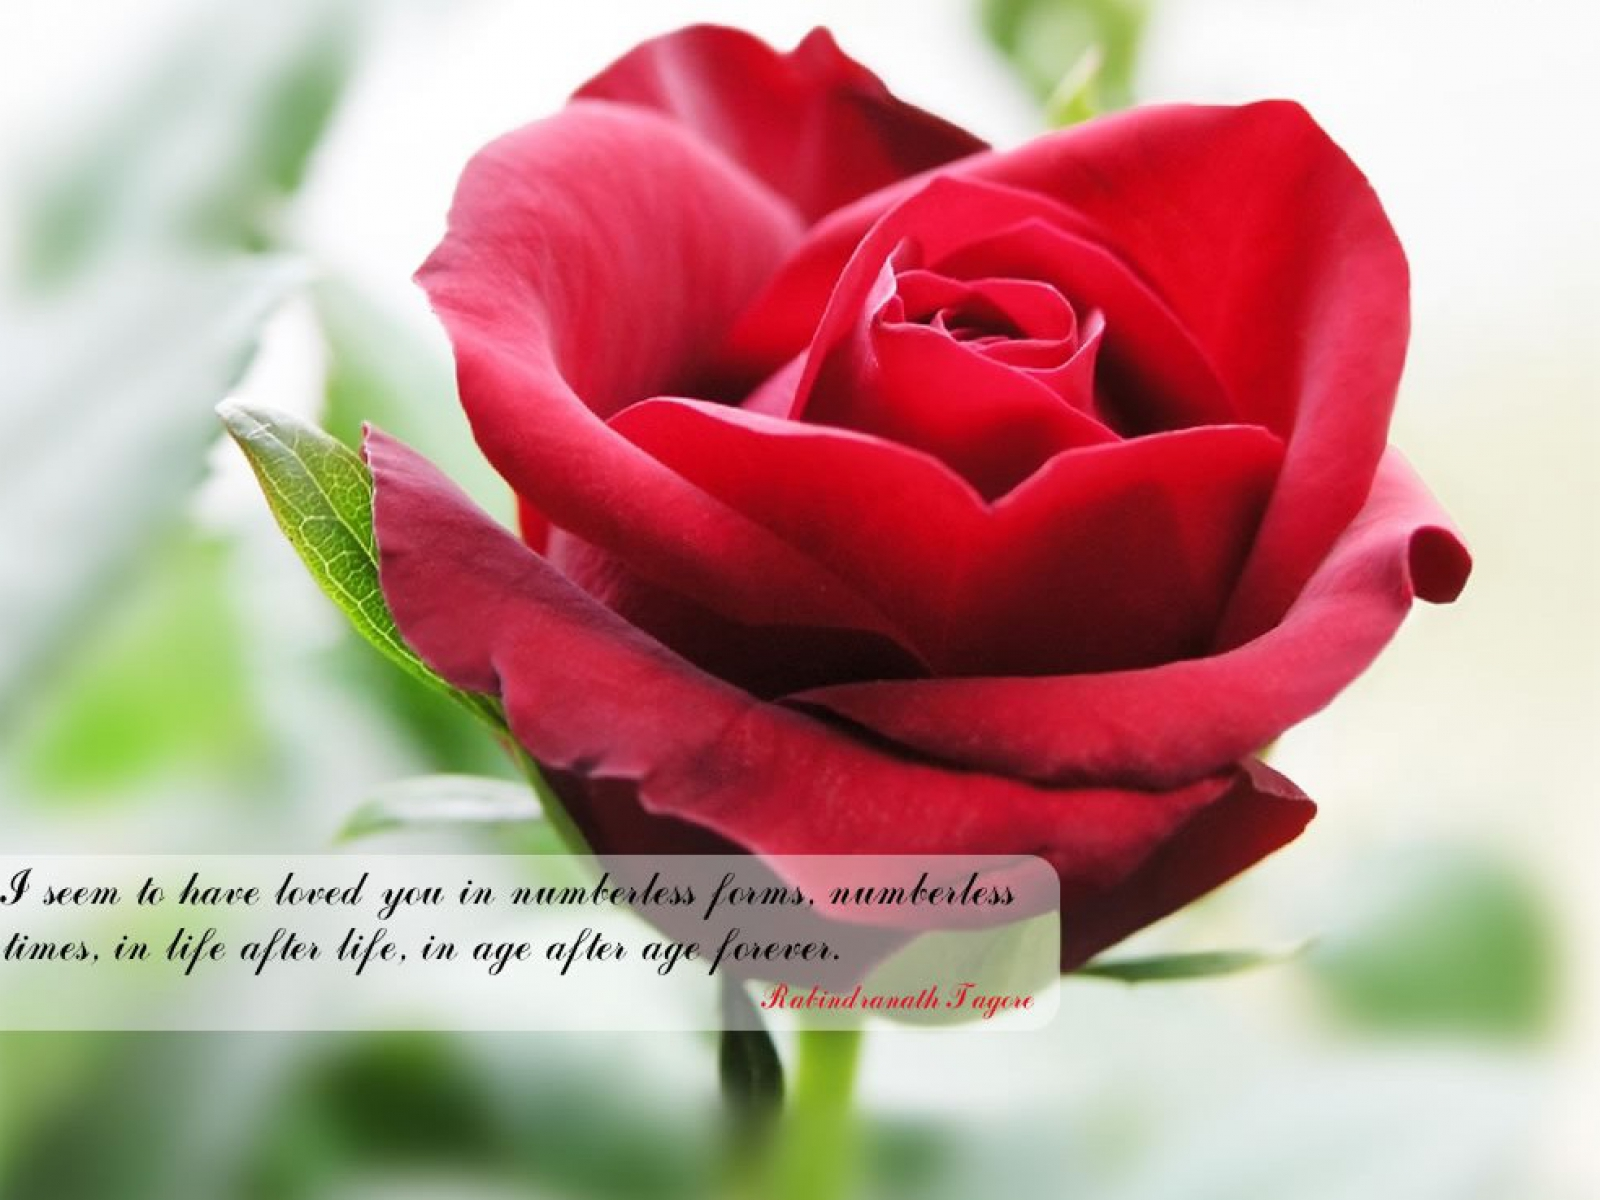 Best rose quotes to show your love rose flowers wallpapers with quotes 8 izmirmasajfo Image collections